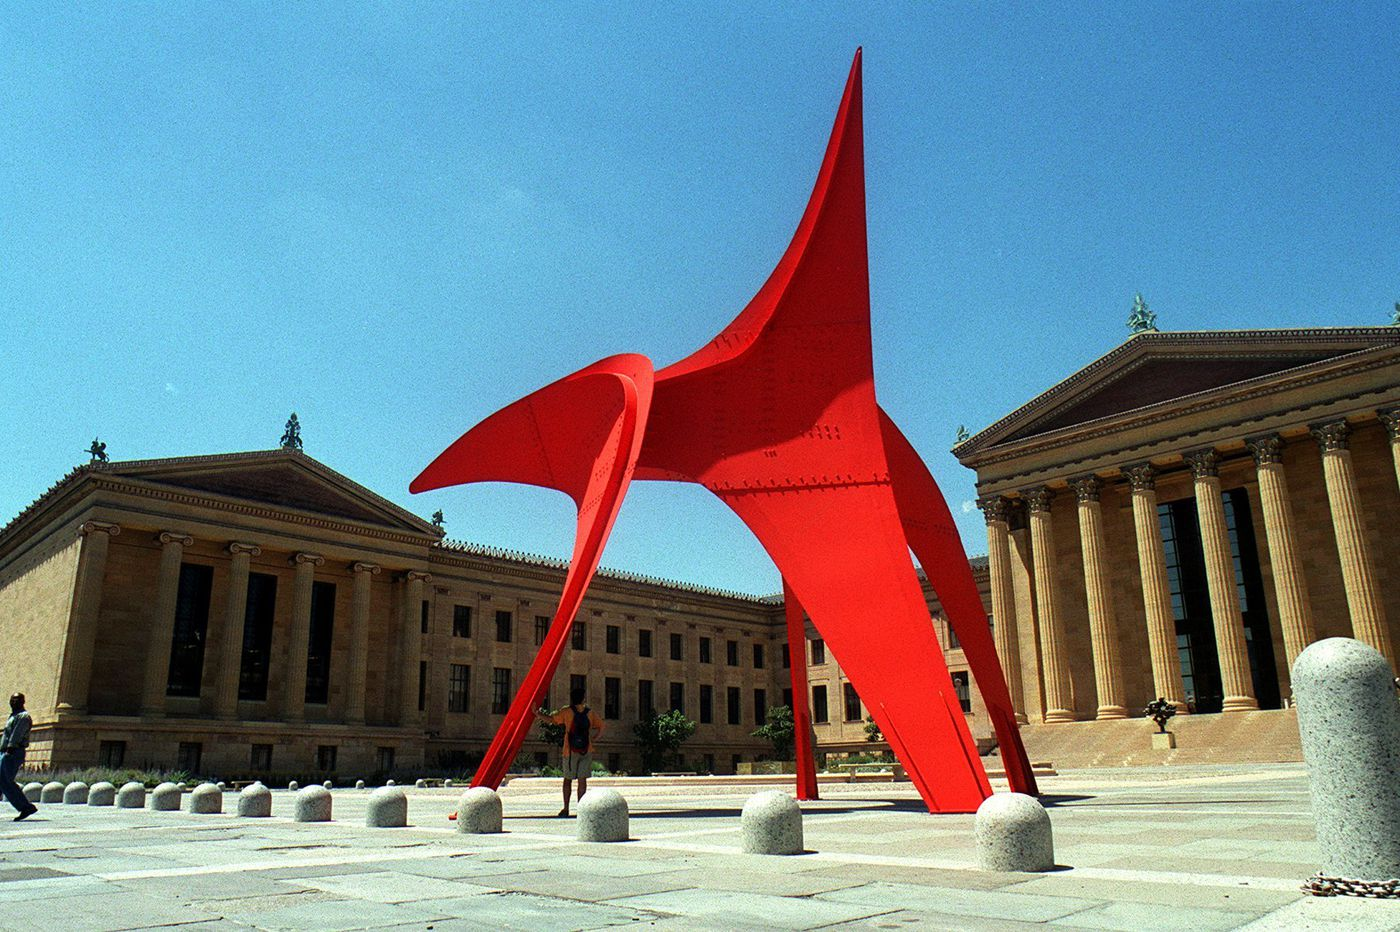 Alexander Calder will finally get a prime museum site on the Parkway, across from Barnes and Rodin